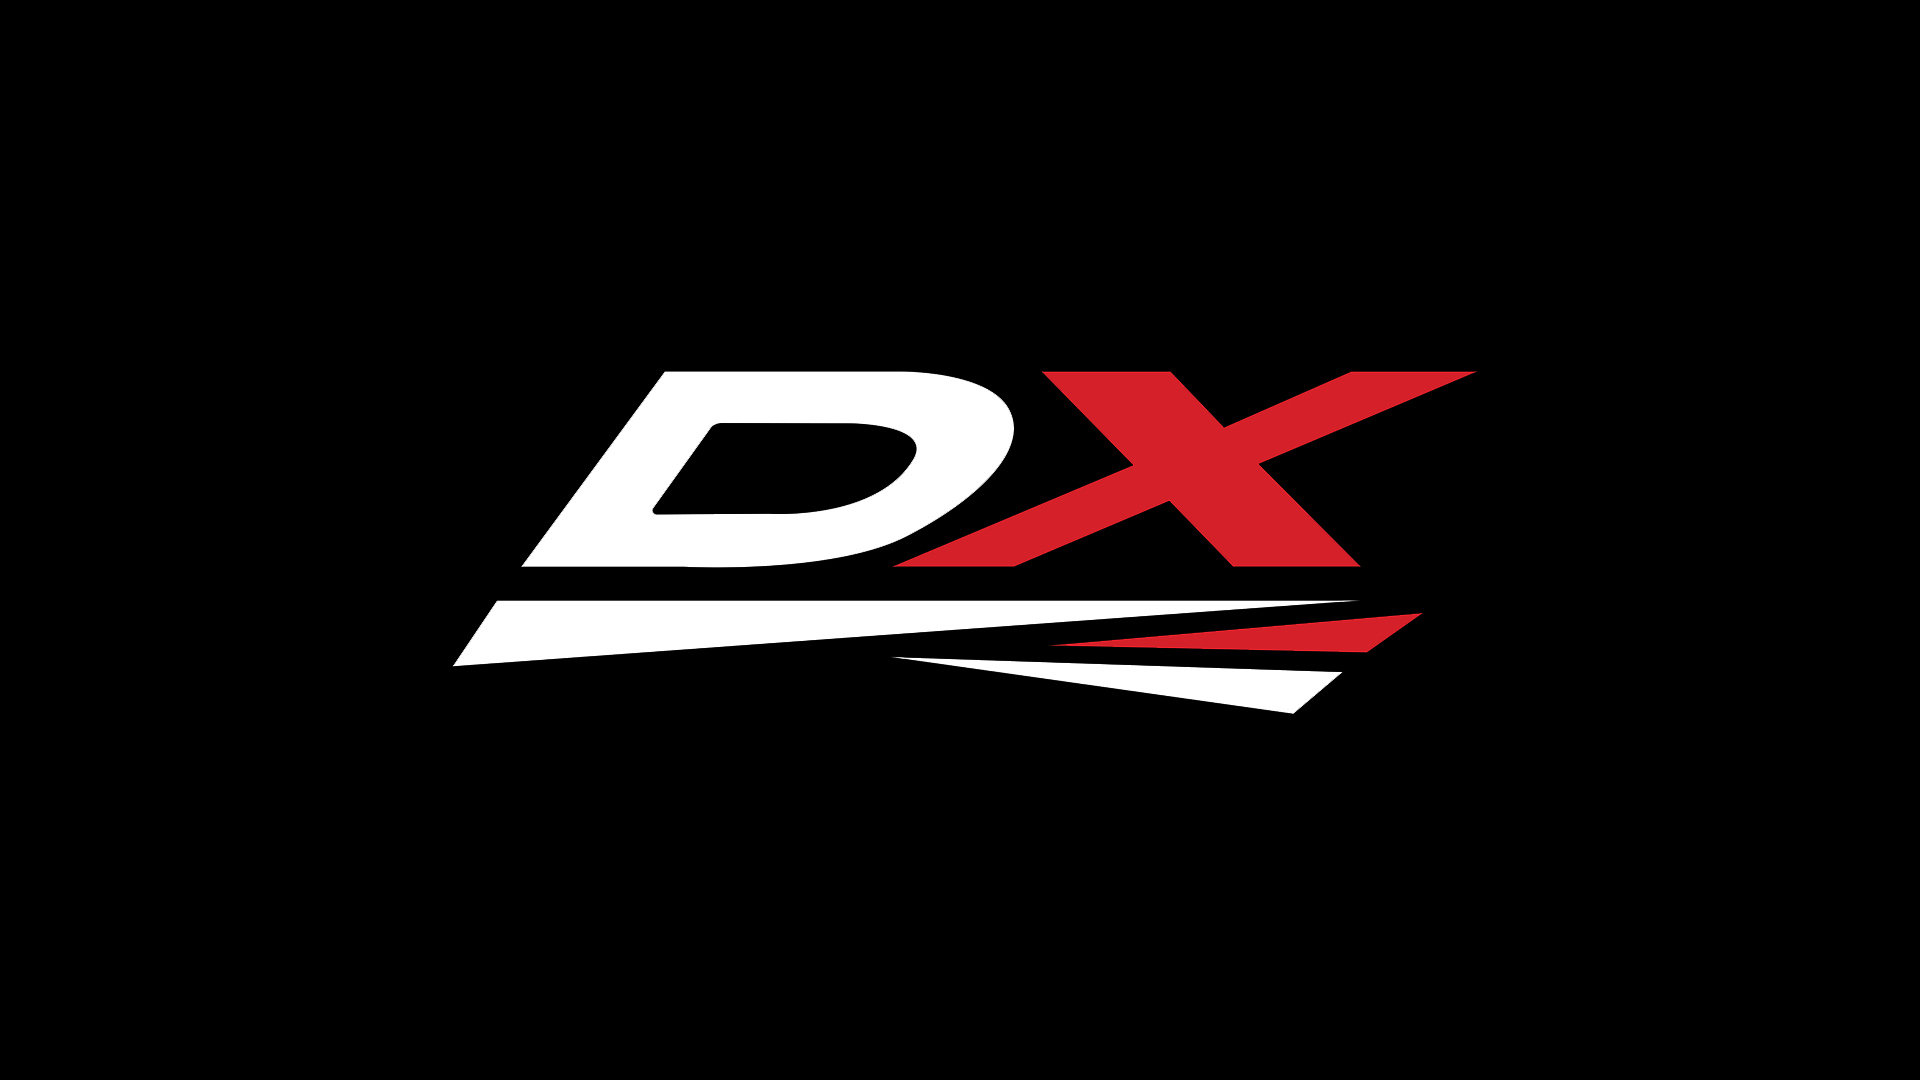 Dx Gaming Logo, Hd Wallpapers & backgrounds Download.